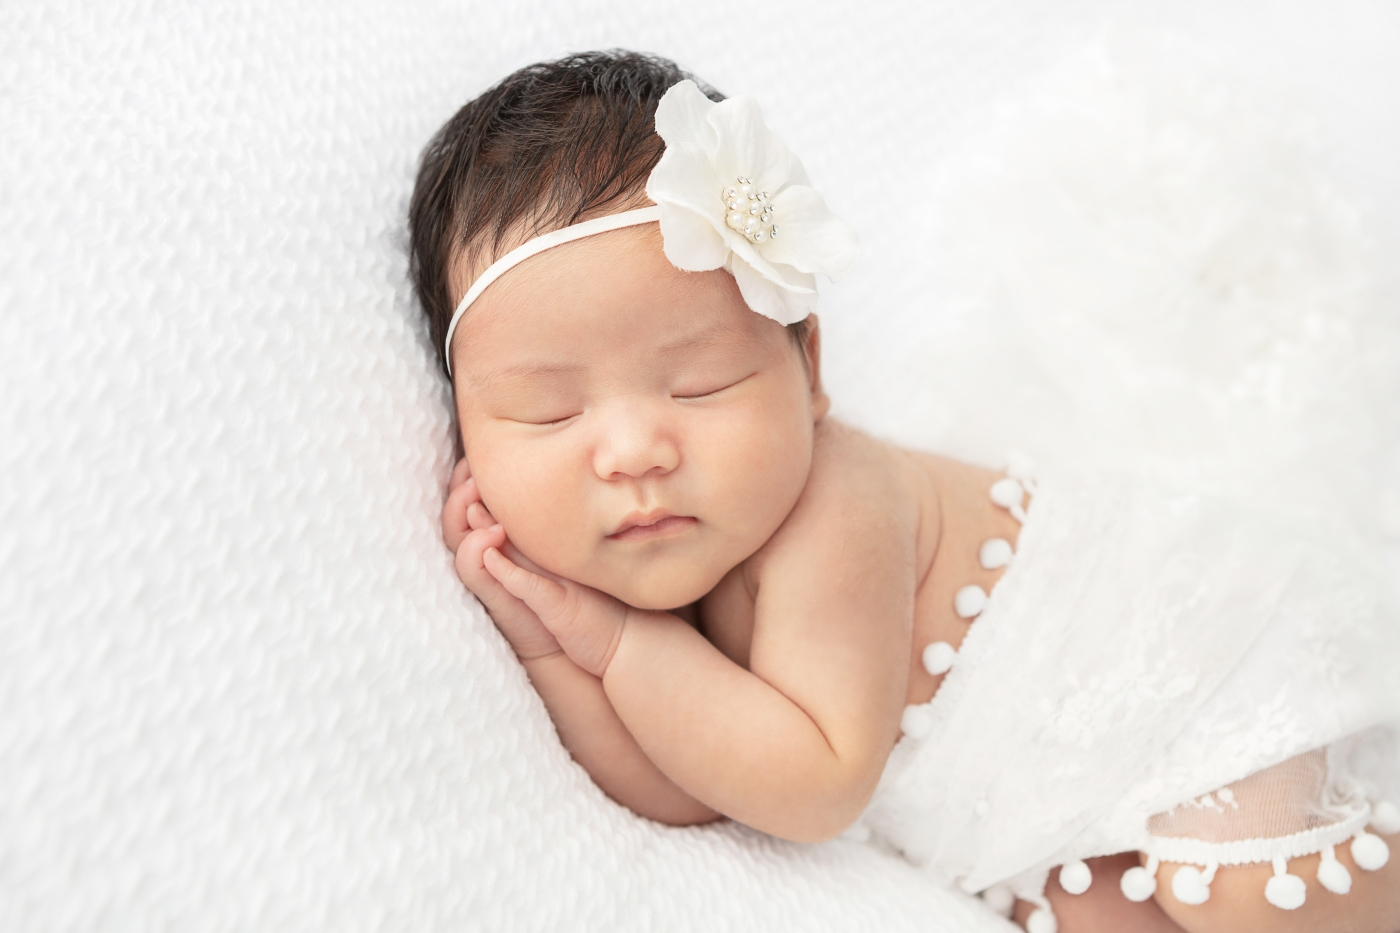 newborn baby girl with dark hair wrapped in a white lace fabric cradled on a soft white fabric withy a white flower headband, hands clasped under her cheek in a sleepy pose